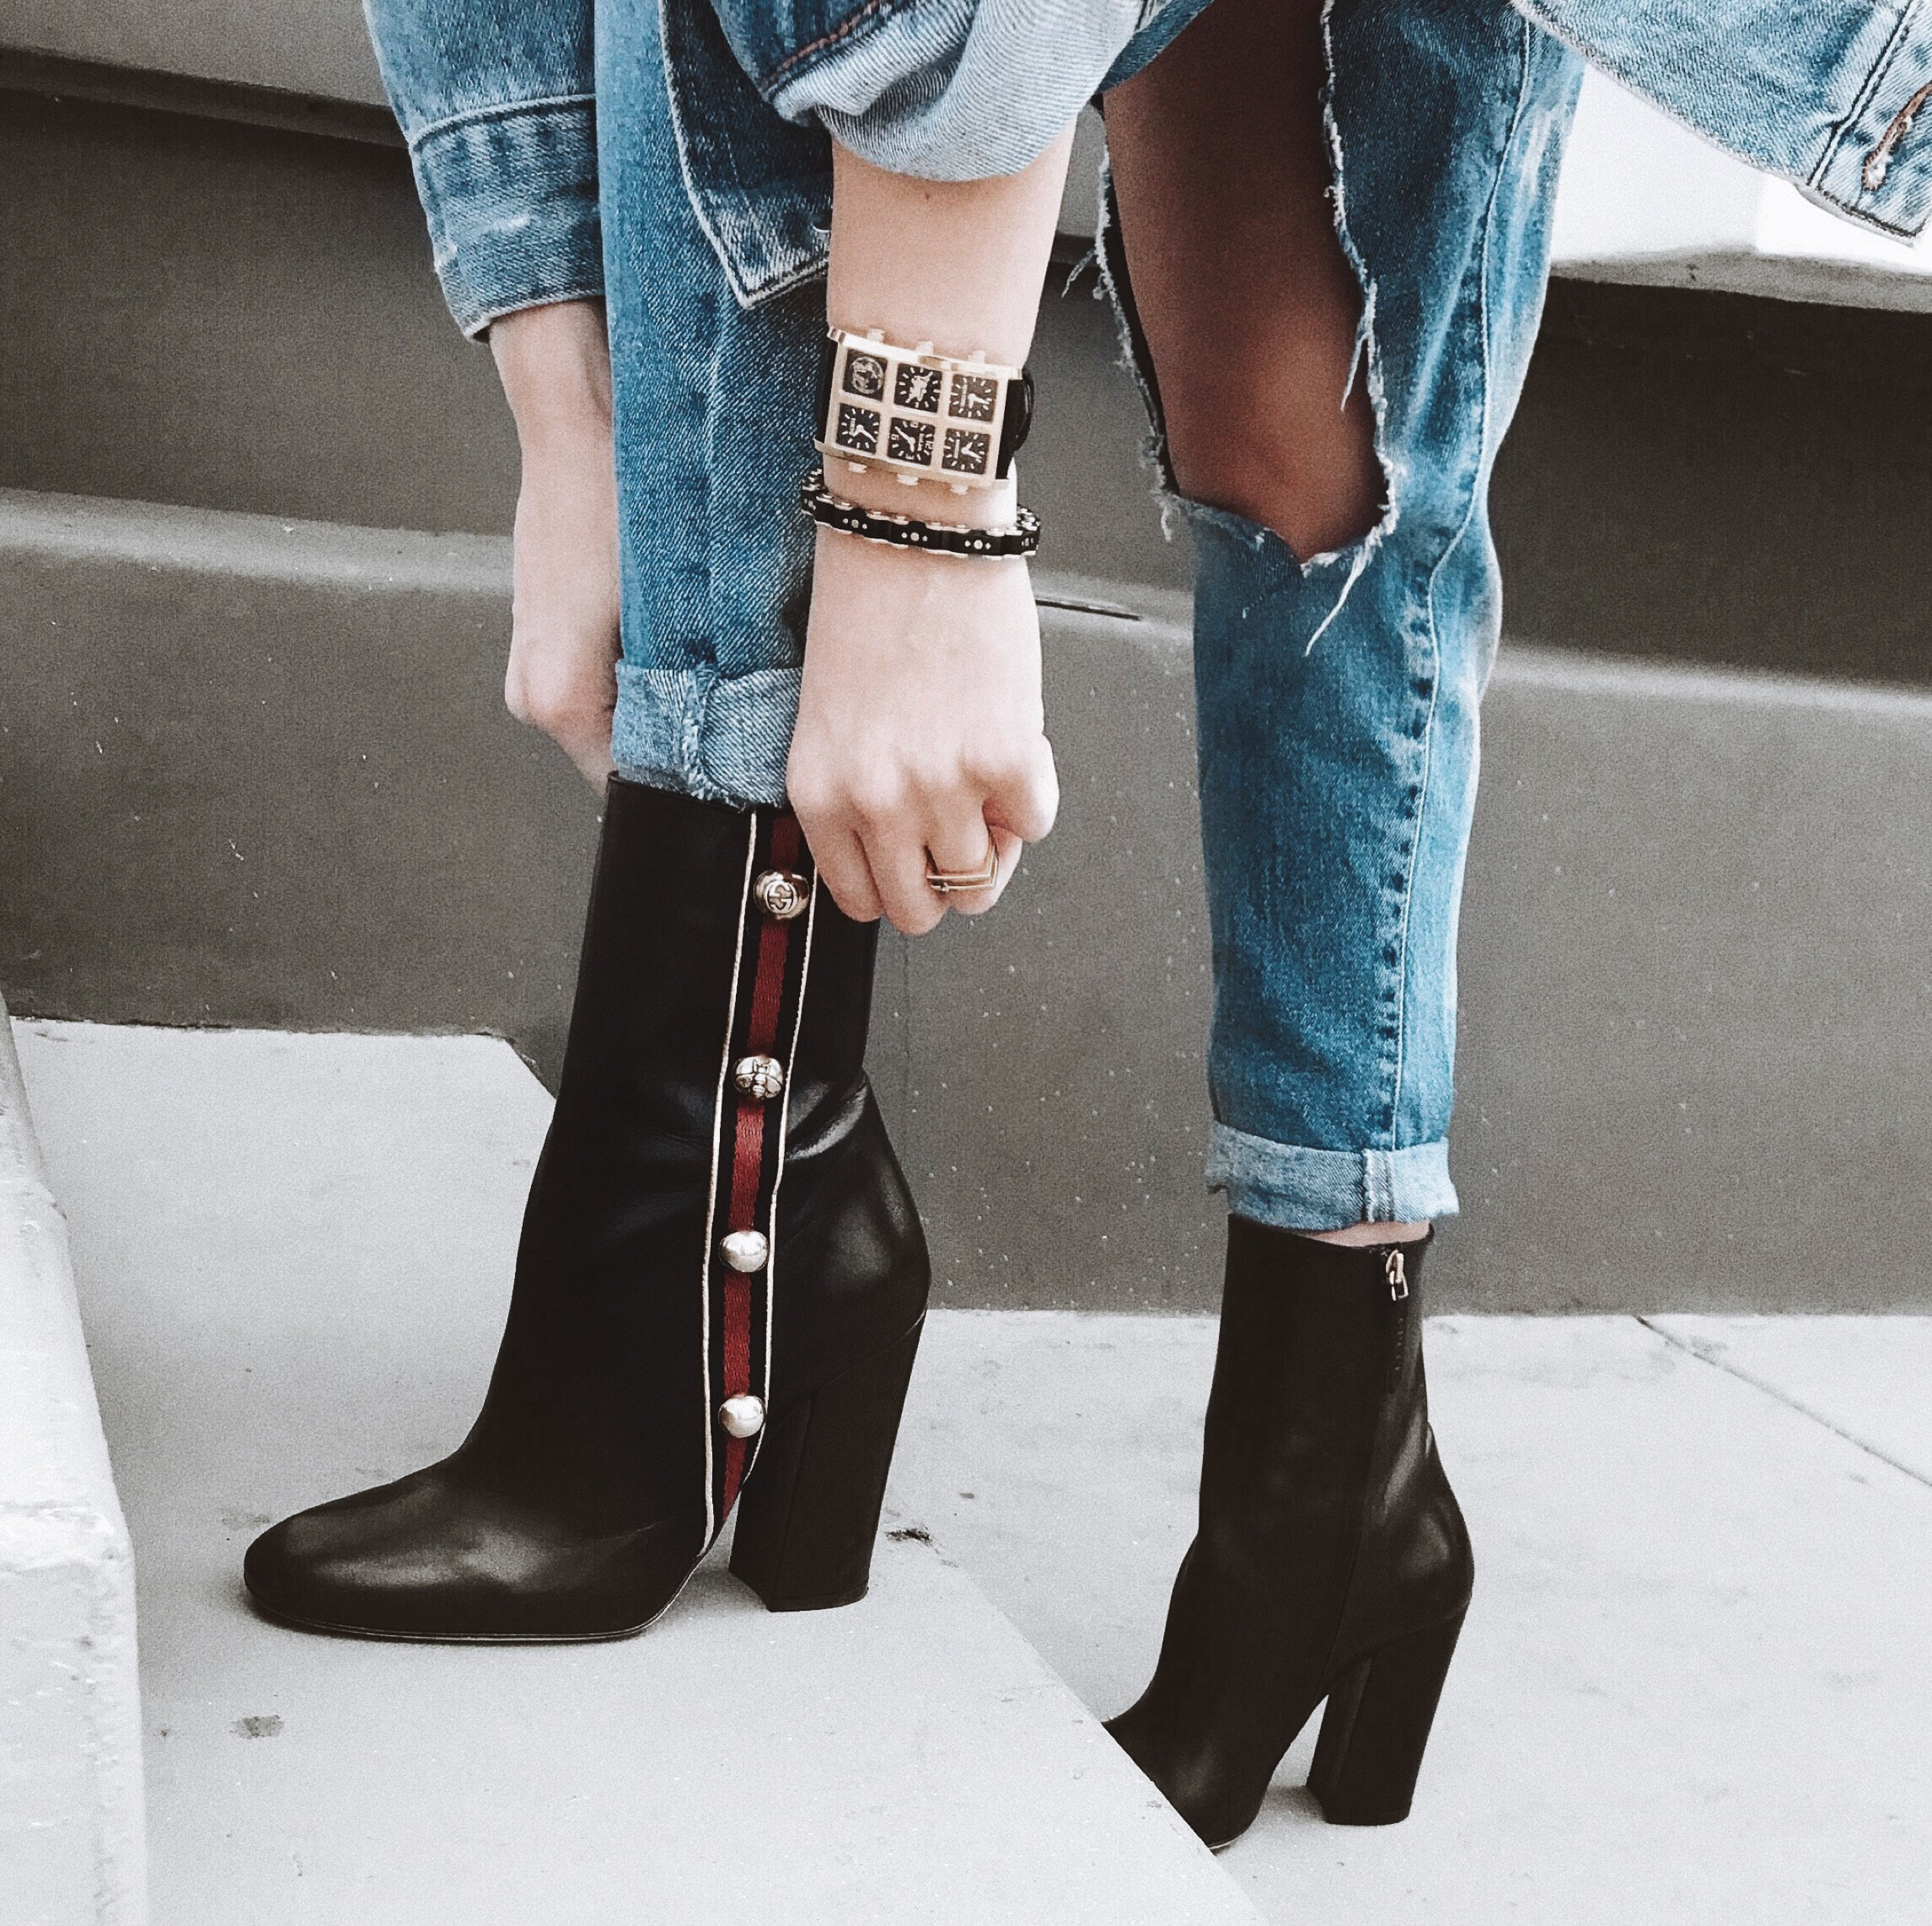 Wearing Lee 40mm Multi-Time Zone Watch pulling up boots